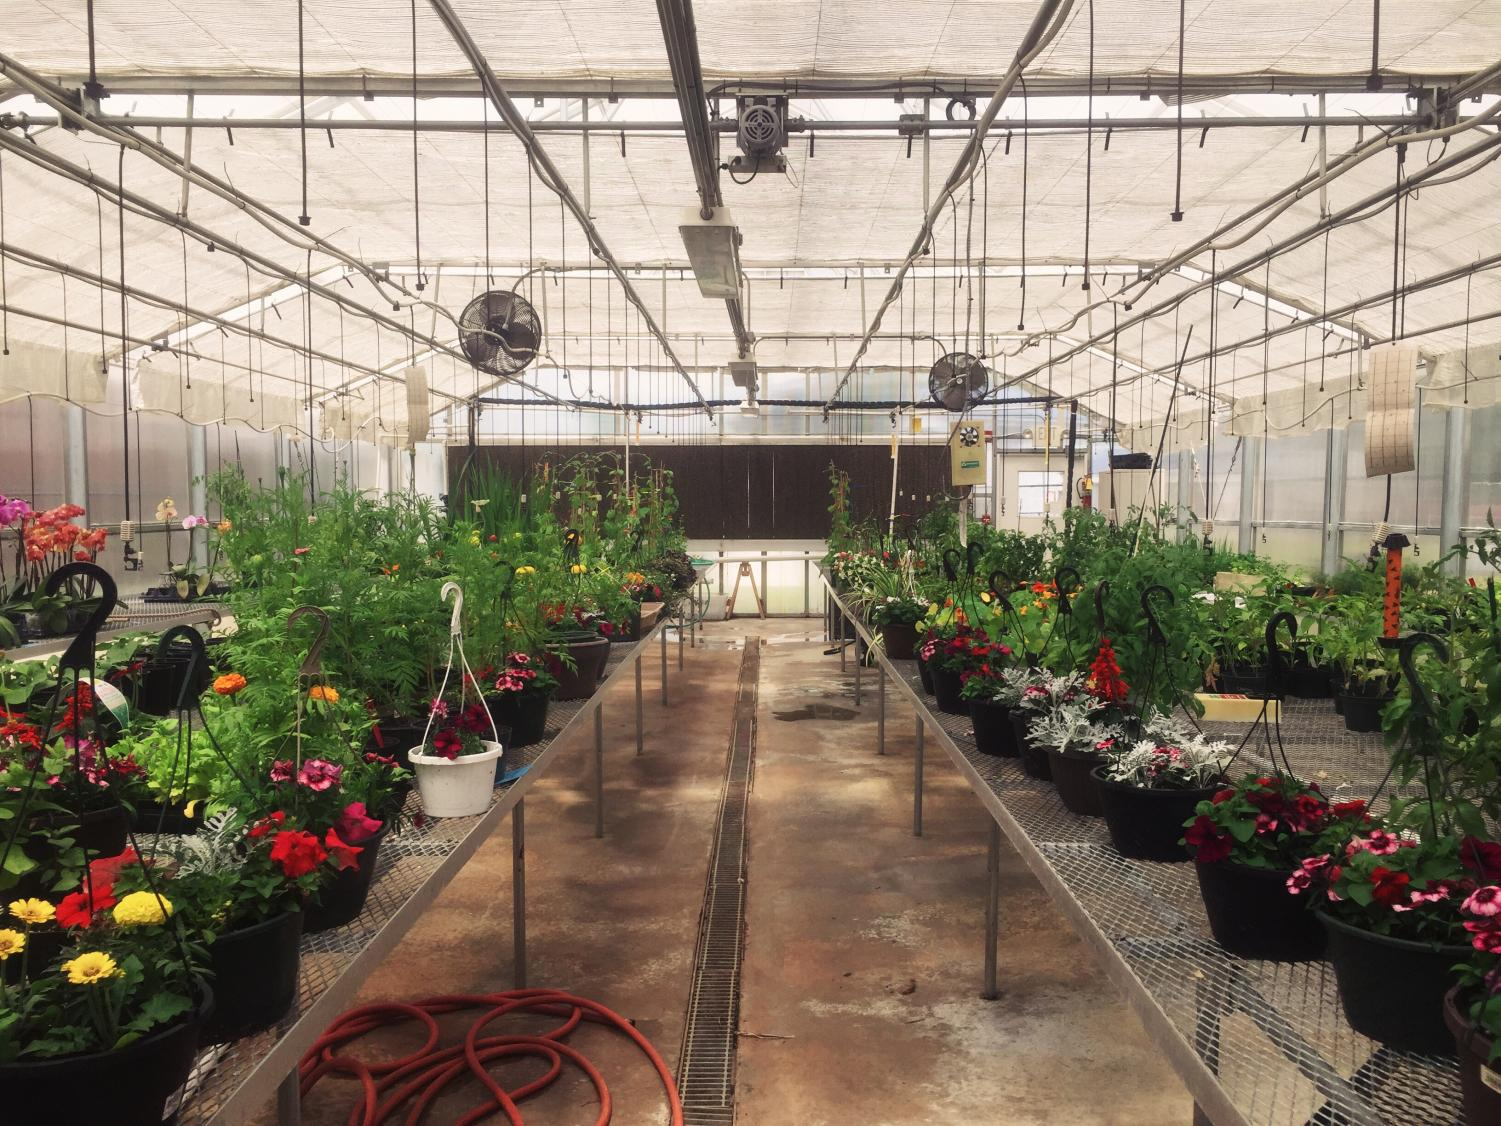 The Greenhouse Gang's annual plant sale for Mother's Day will take place from Thursday, May 10 through Saturday, May 12. All items stay within a student's price range and will make the perfect gift for mothers.